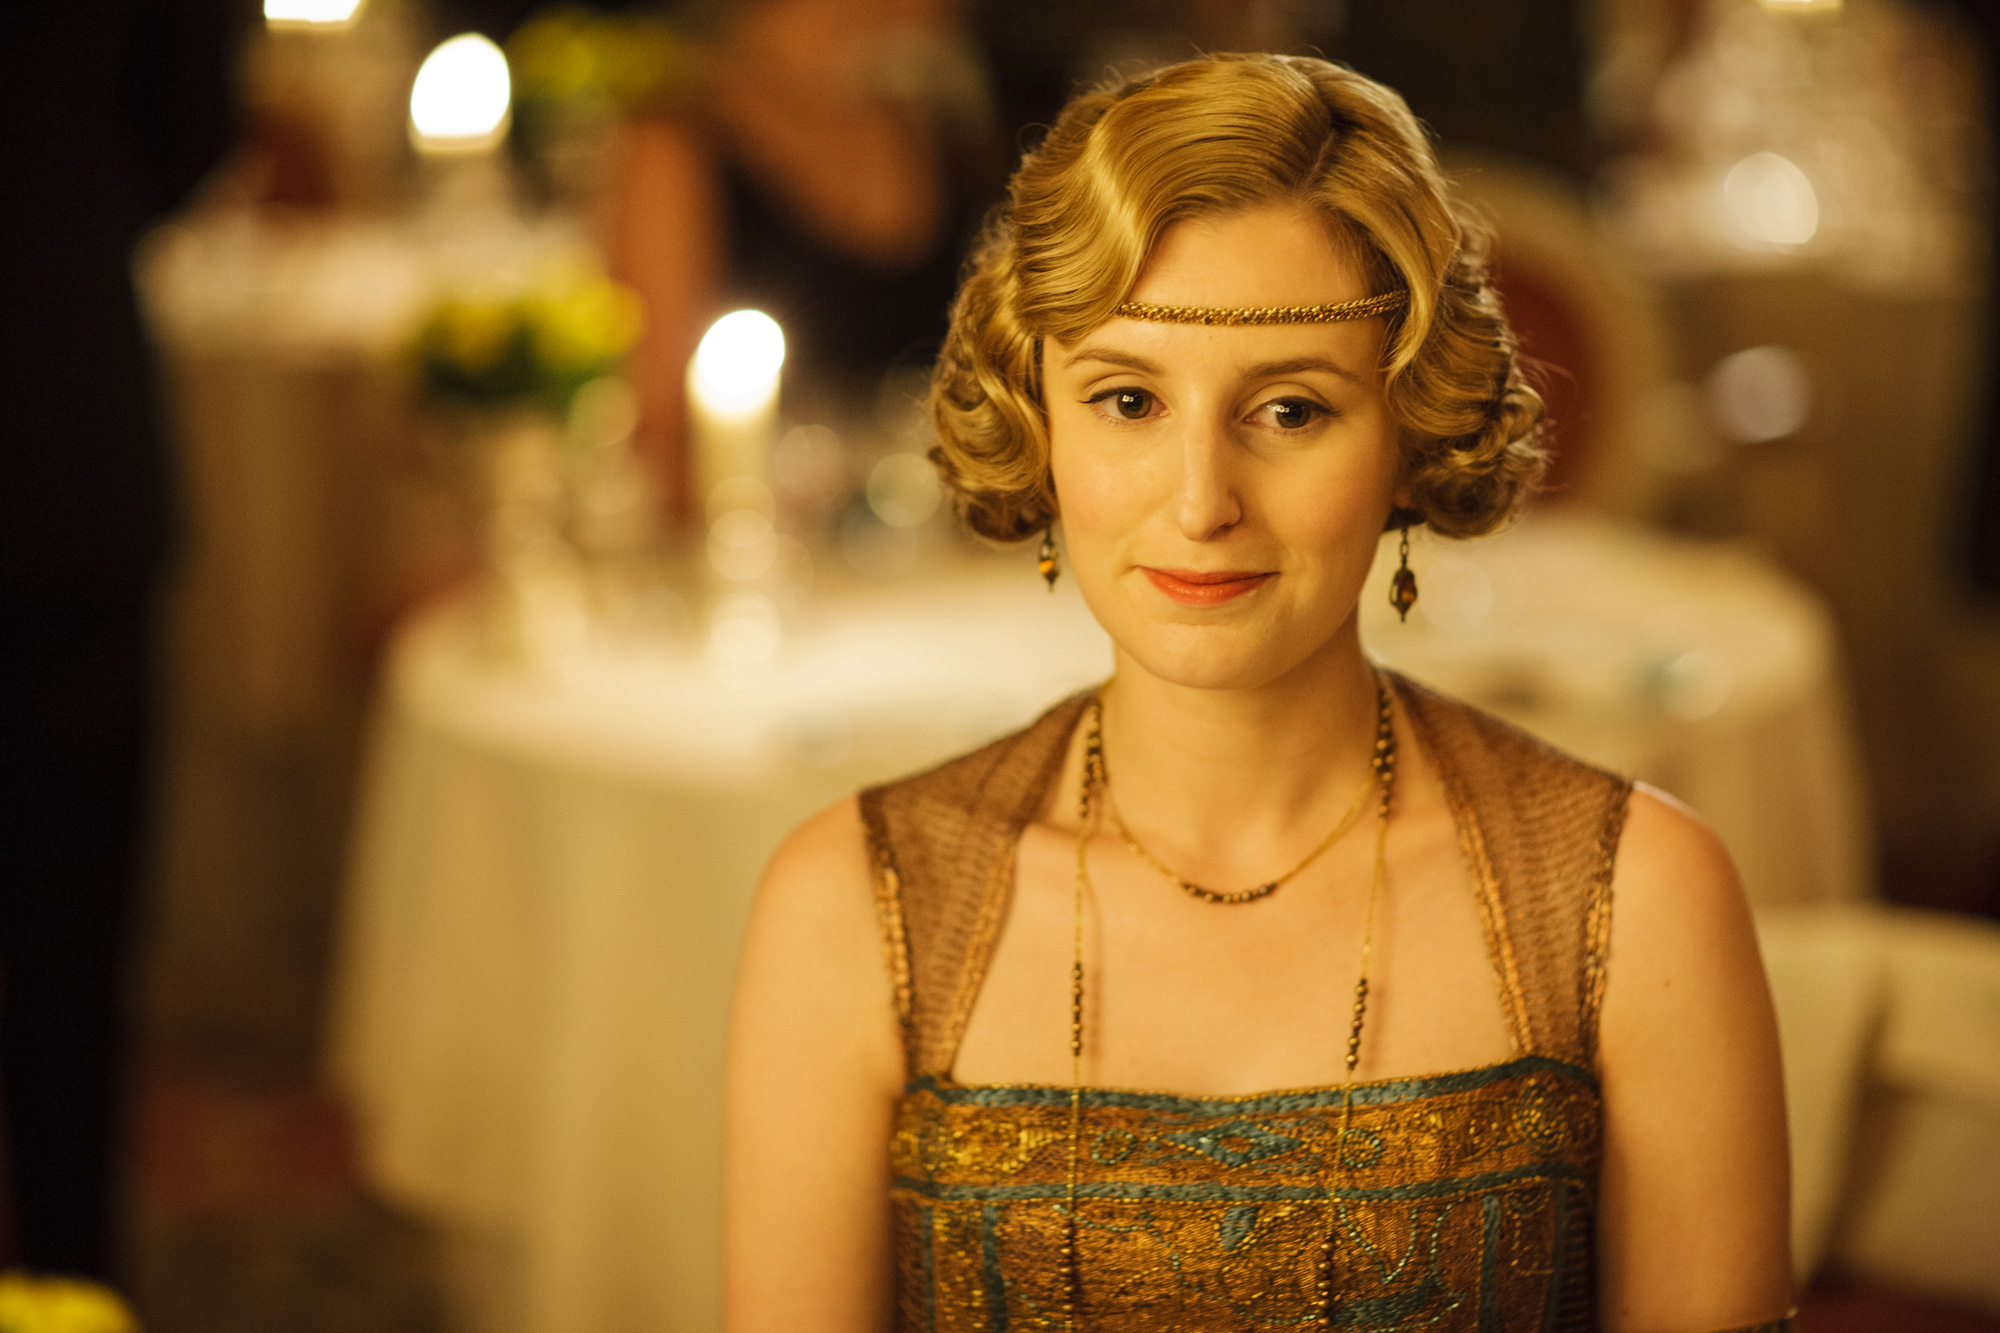 Lady Edith contemplates here future in the splendour of the Restaurant at The Ritz.